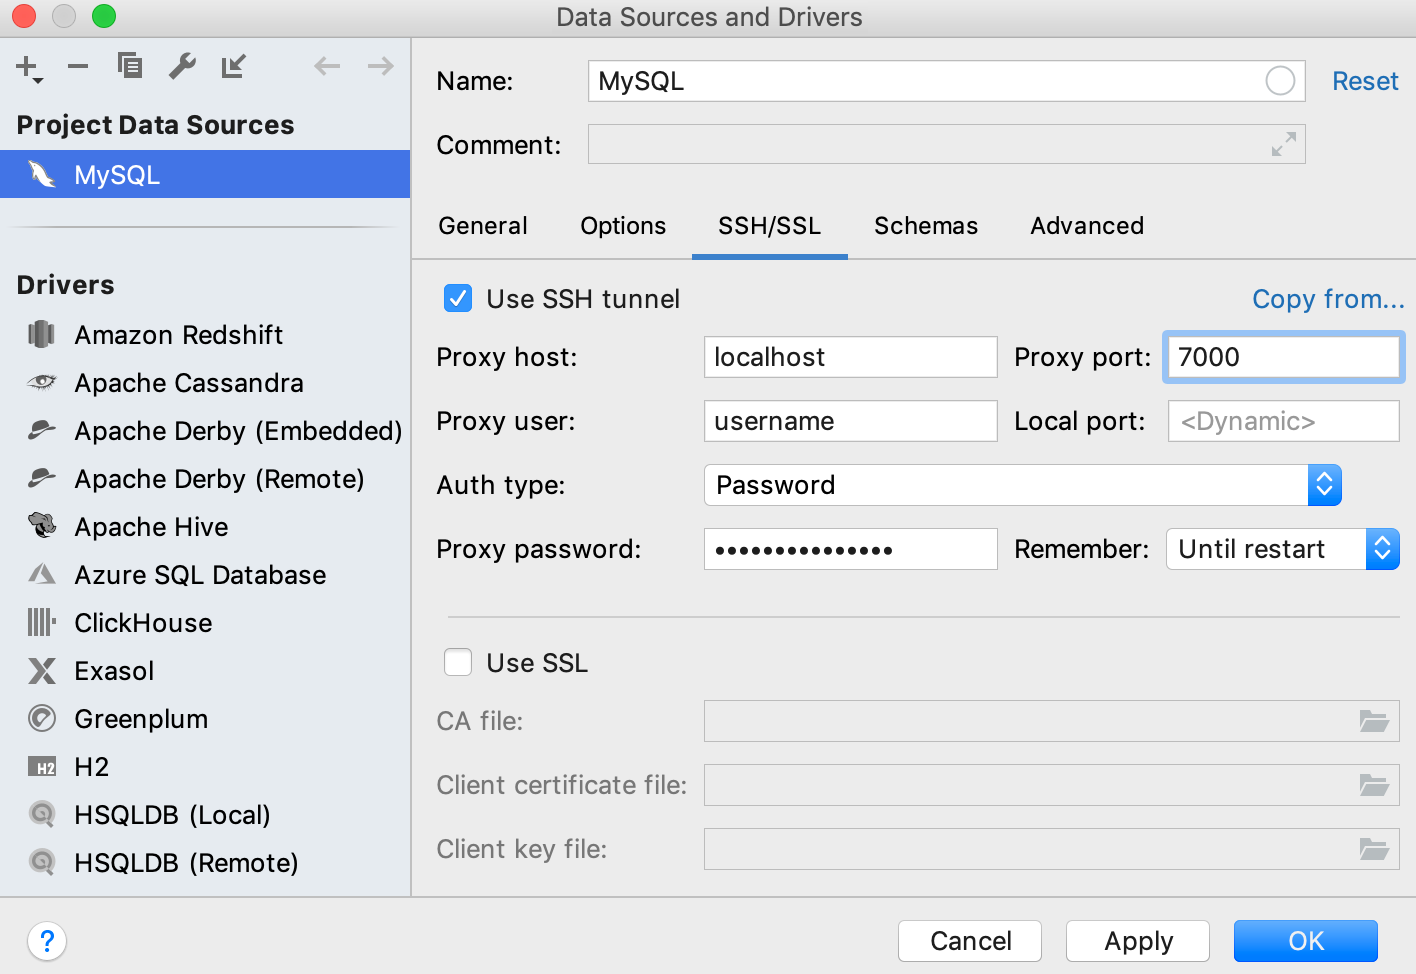 SSH and SSL settings of a data source